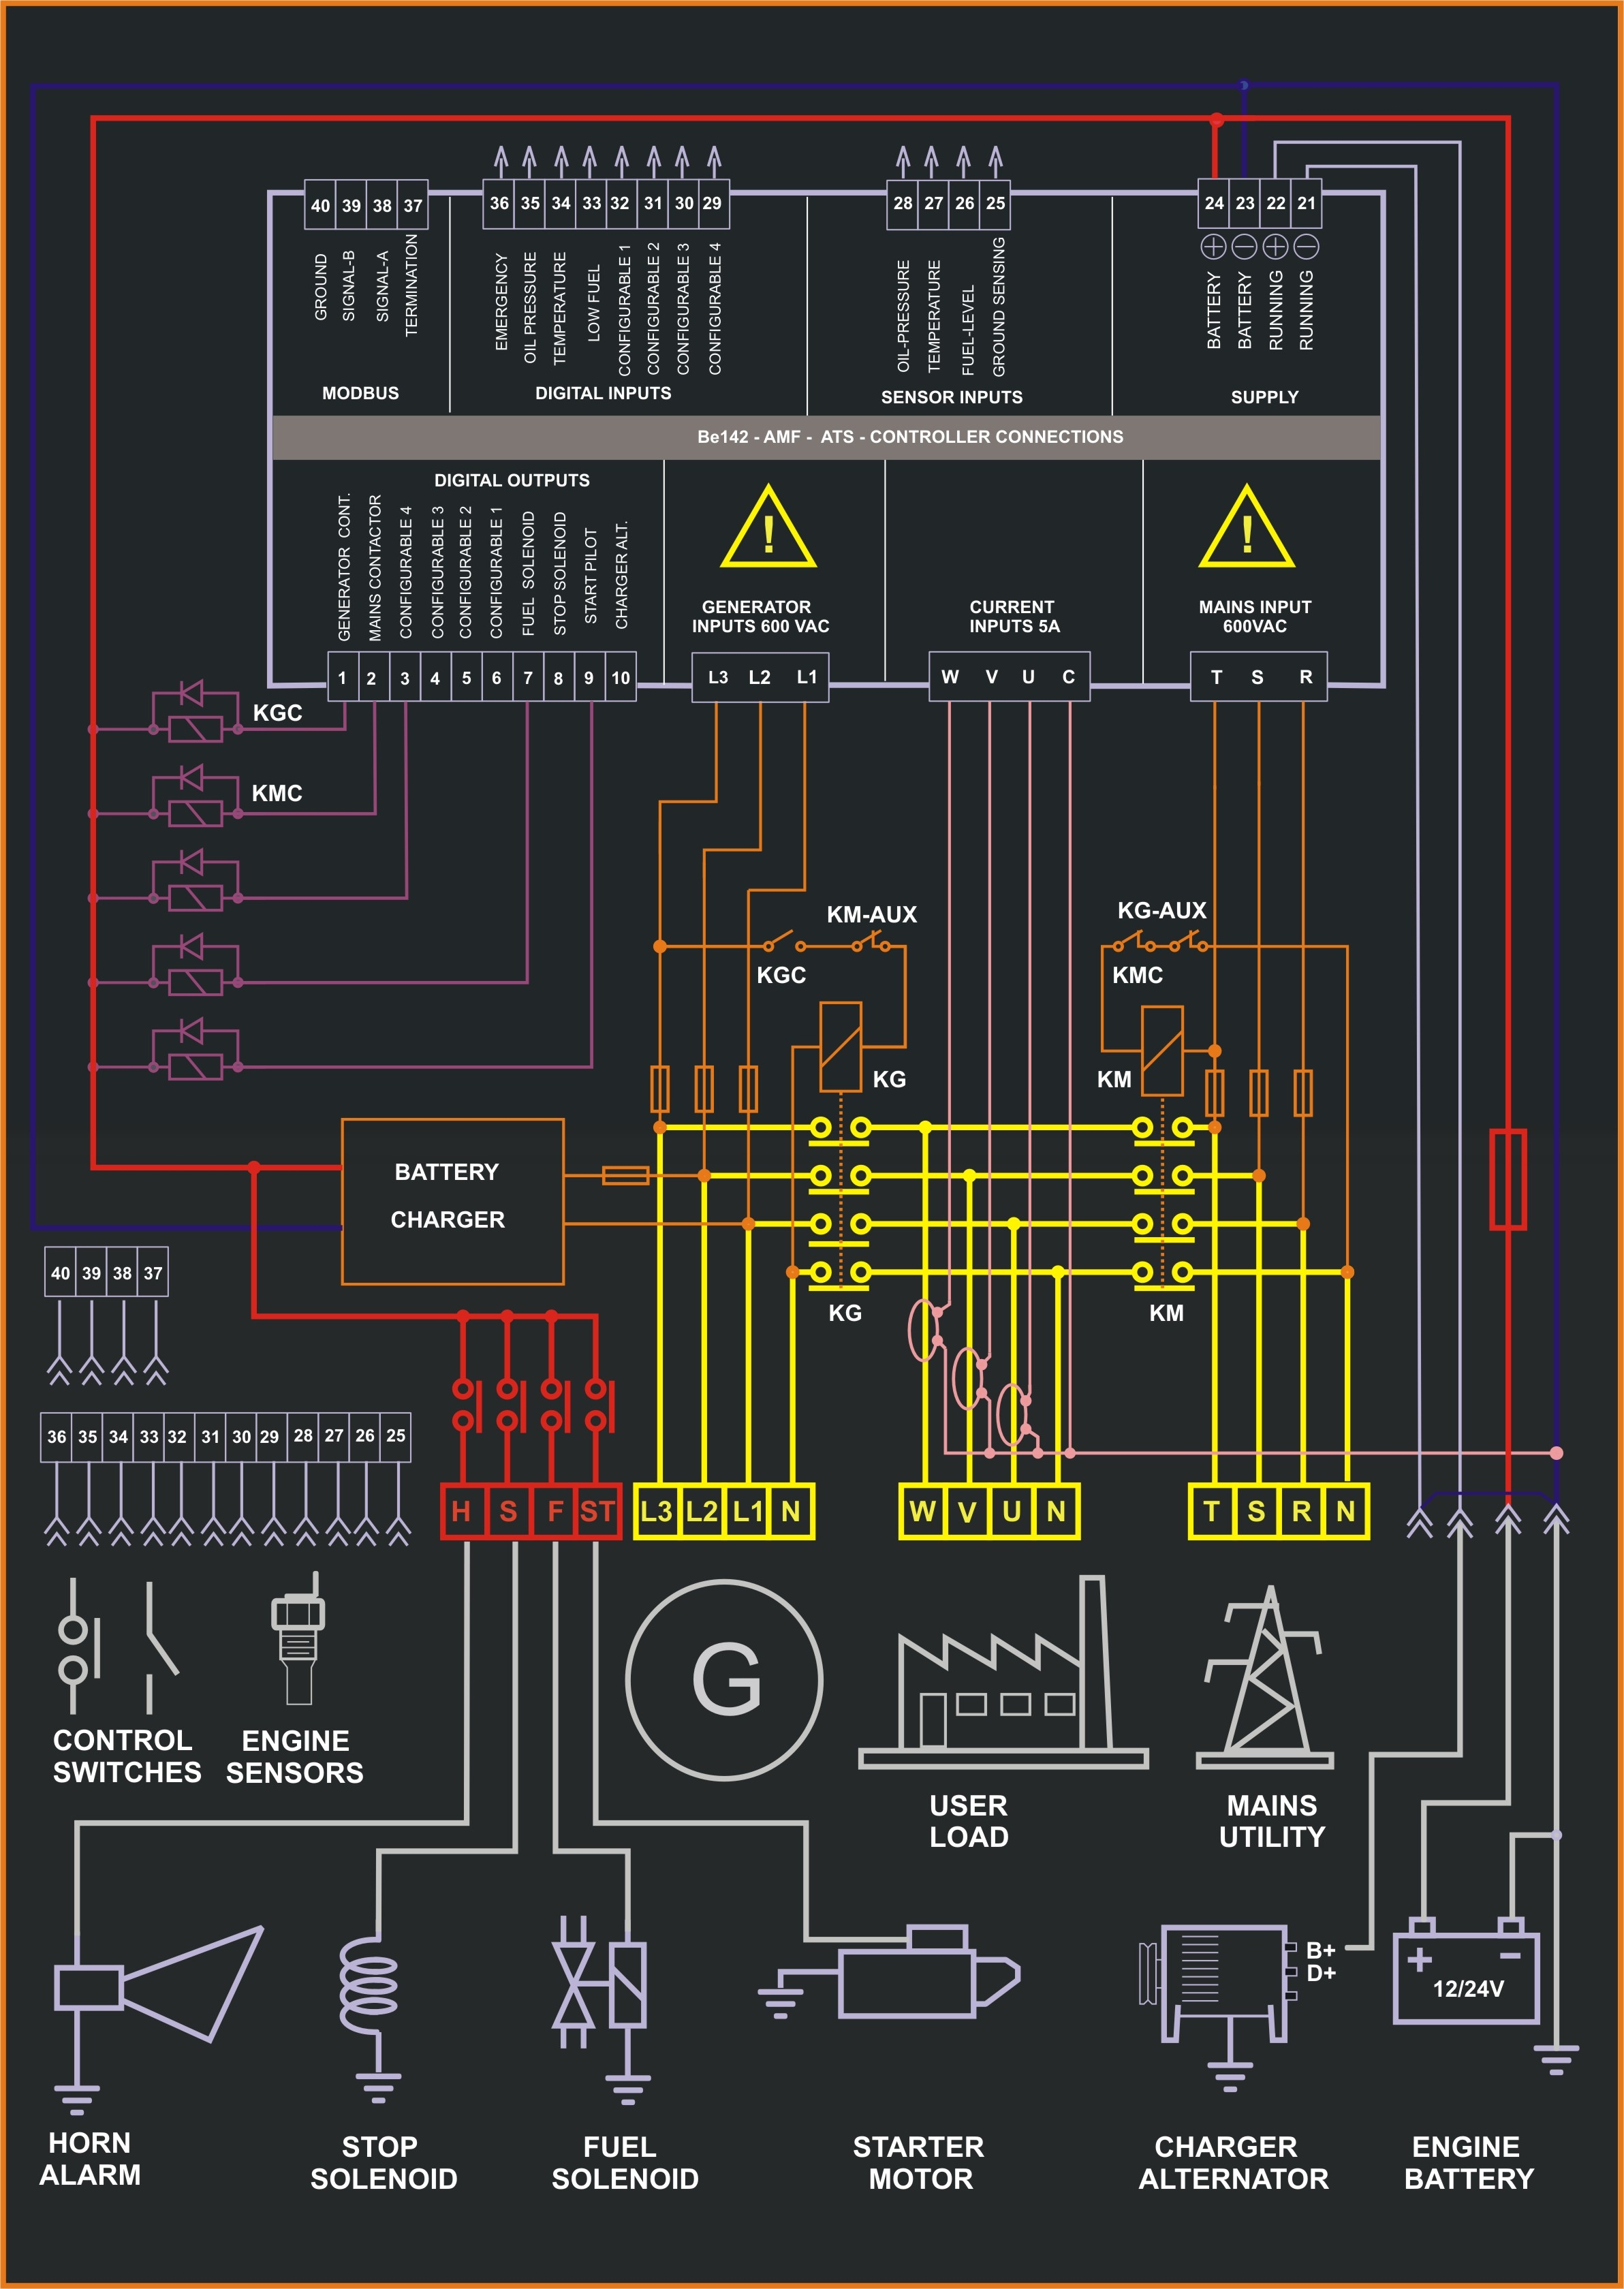 Control panel circuit diagram pdf control panel circuit diagram genset controller generator control panel wiring diagram at bakdesigns.co